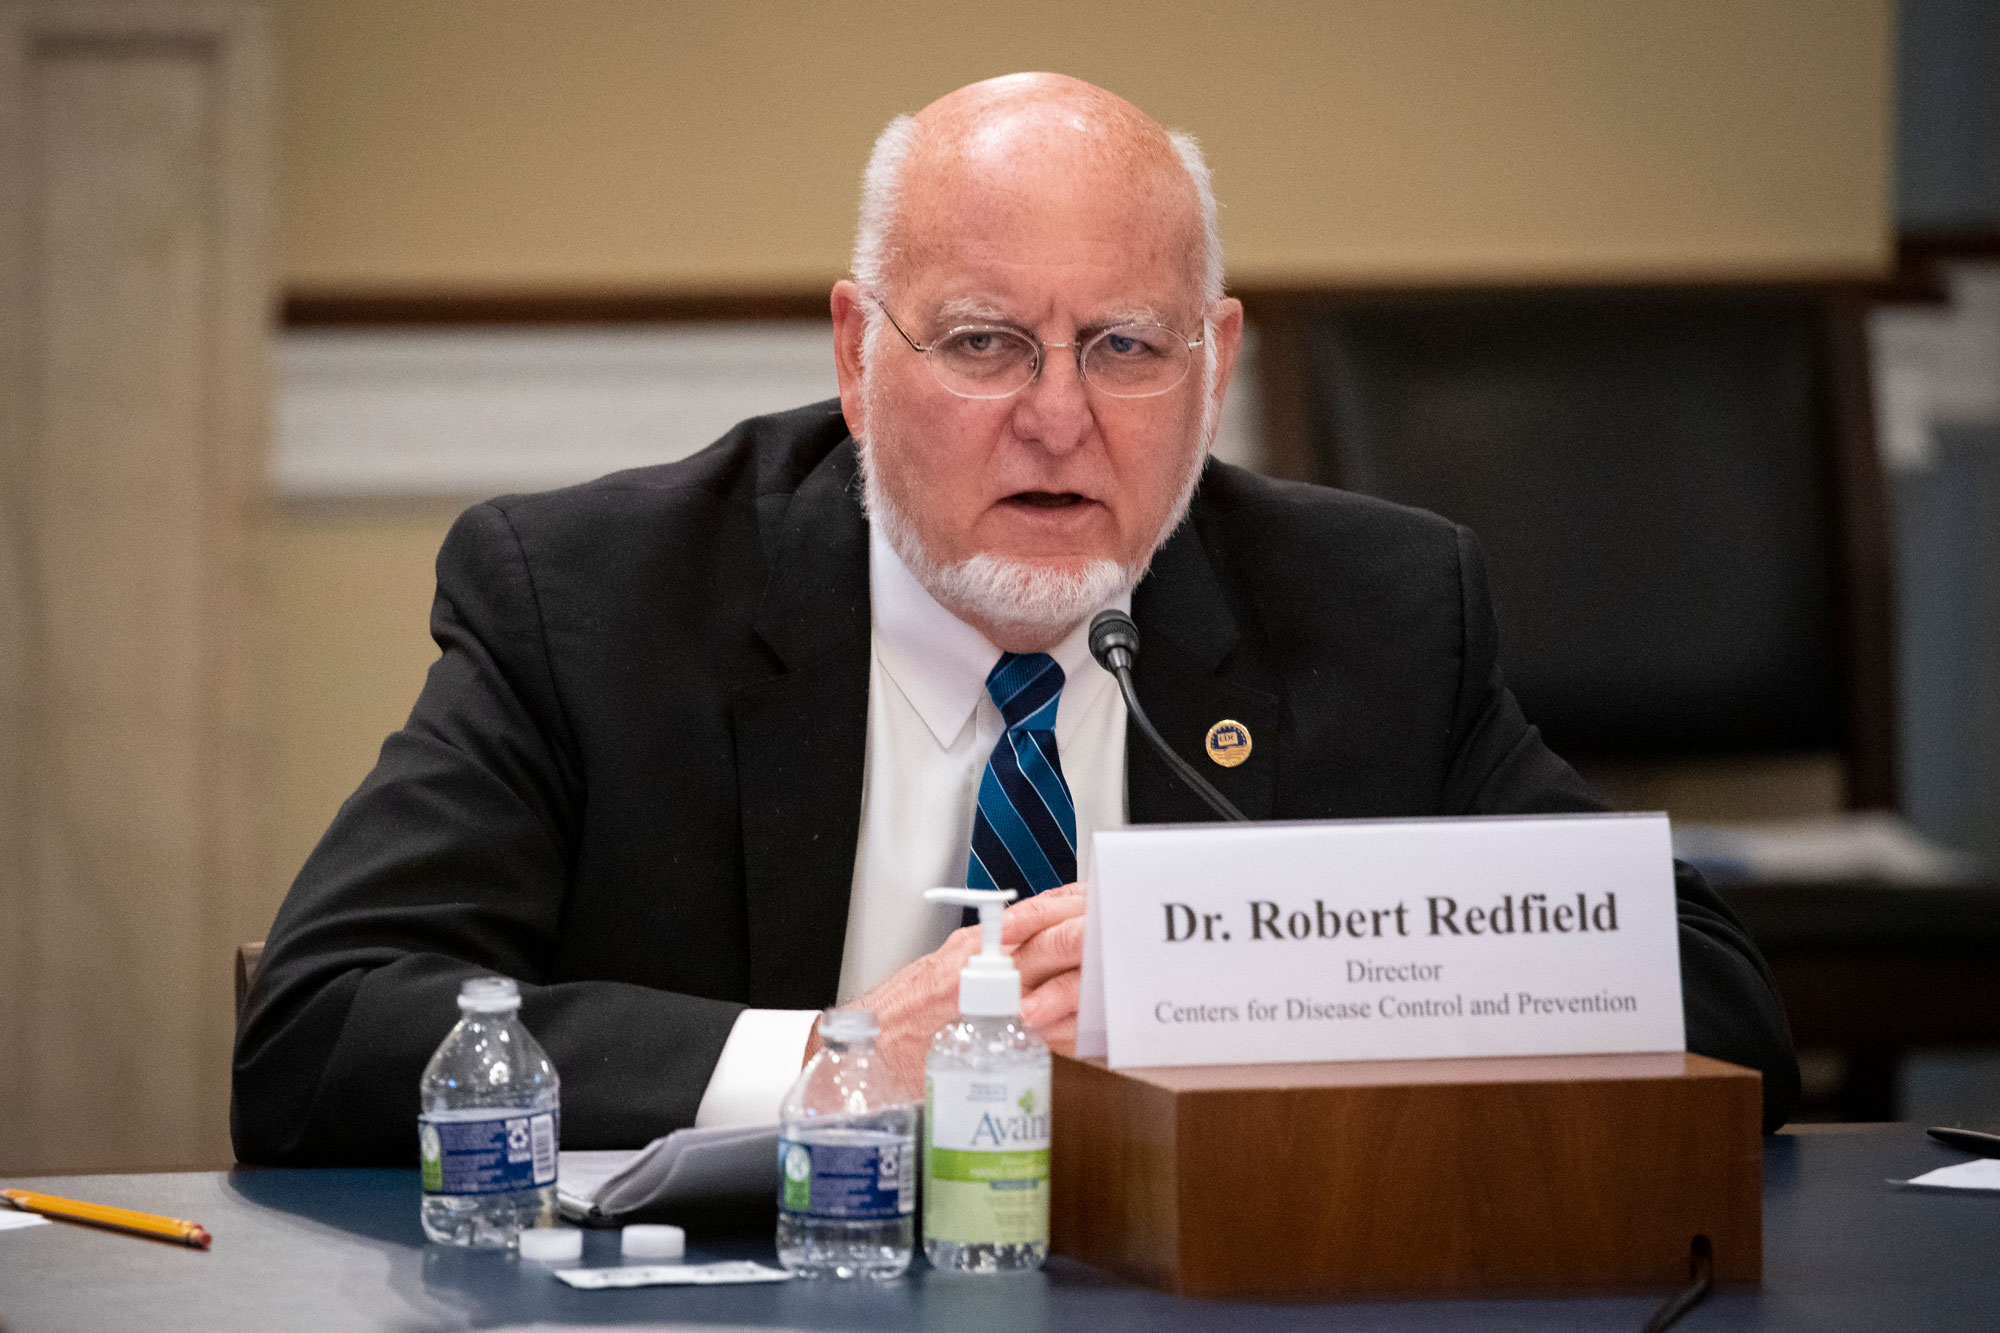 Dr. Robert Redfield, director of the Centers for Disease Control and Prevention, testifies at a Labor, Health and Human Services, Education, and Related Agencies Appropriations Subcommittee hearing about the COVID-19 response on Capitol Hill in Washington on June 4.